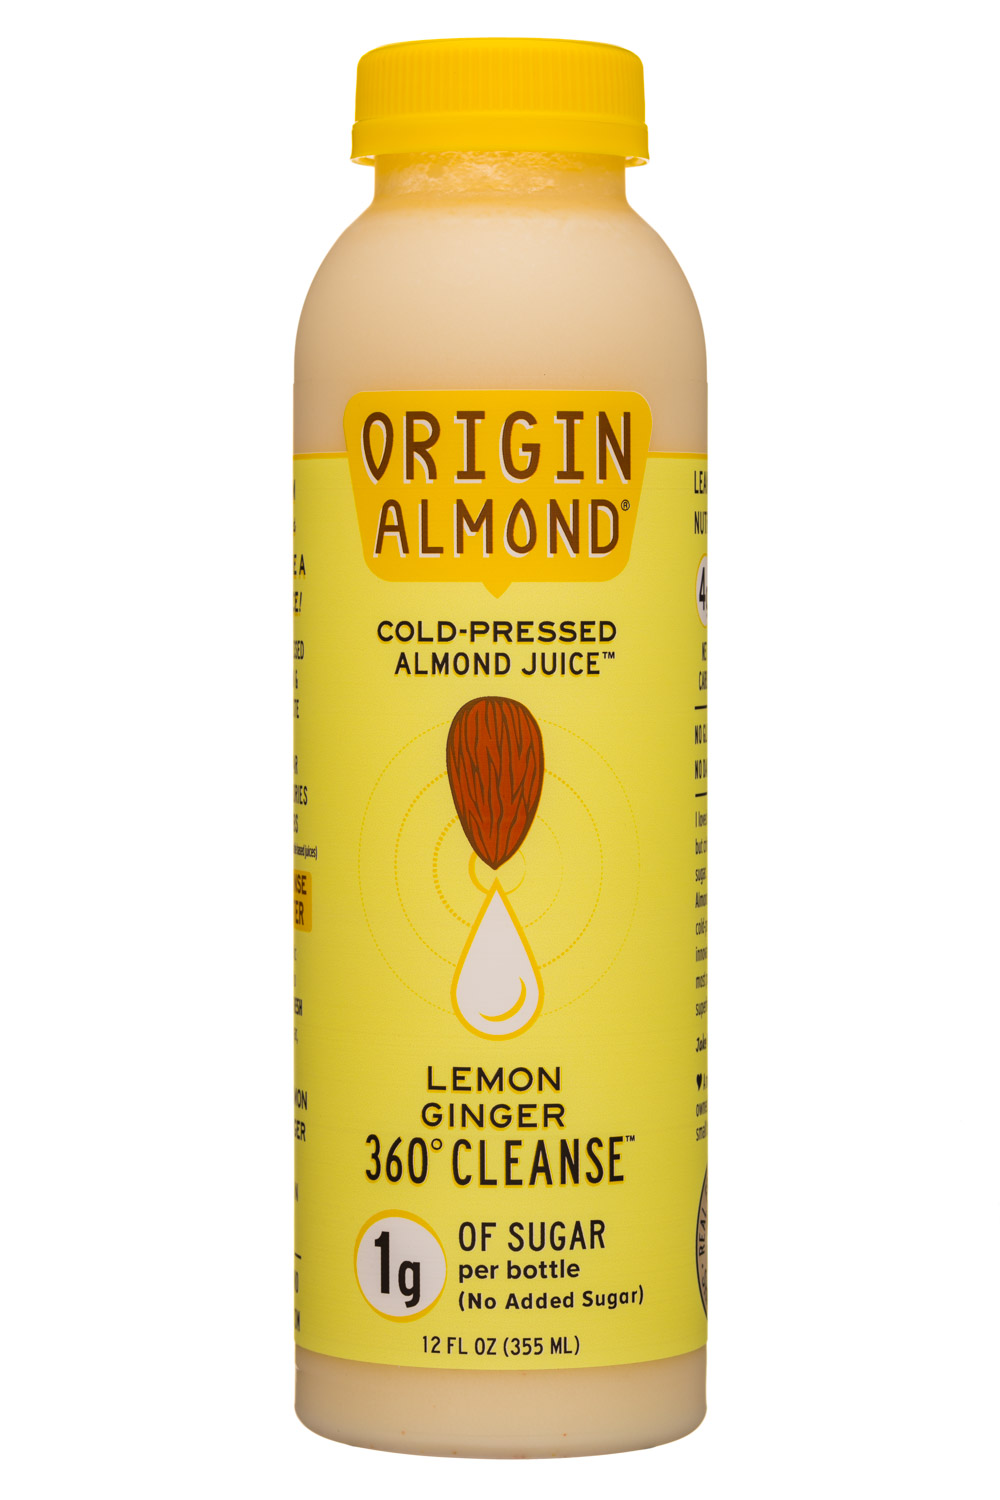 Lemon Ginger (2019)